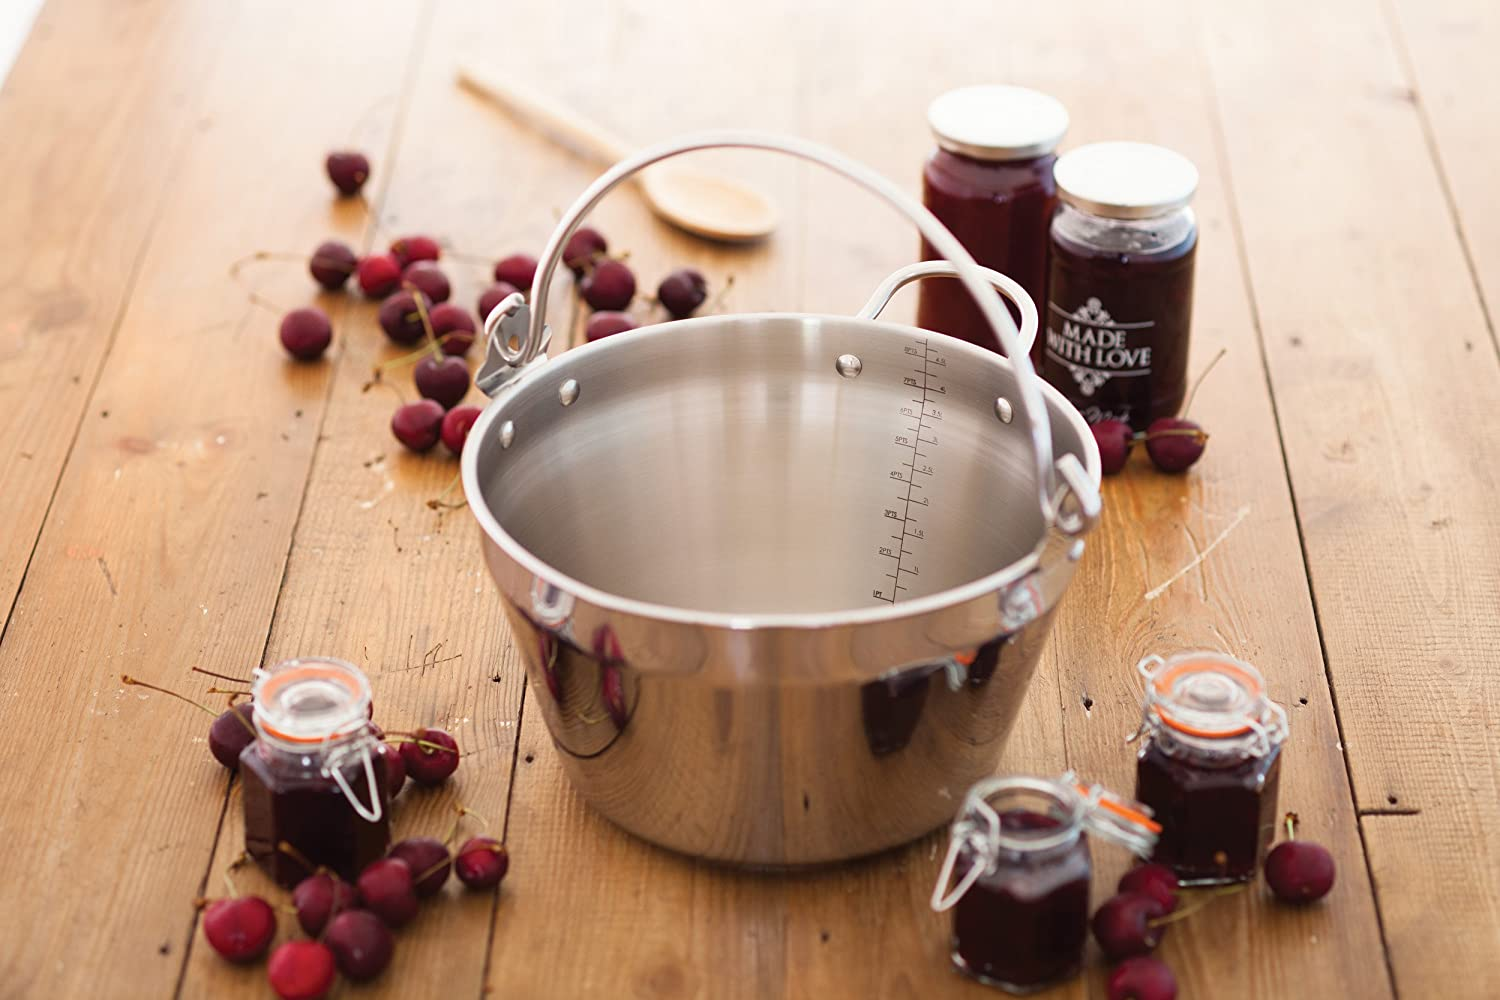 KitchenCraft Home Made Maslin/Jam Pan for Induction Hob with Recipe in Gift Box, Stainless Steel, 4.5 Litre